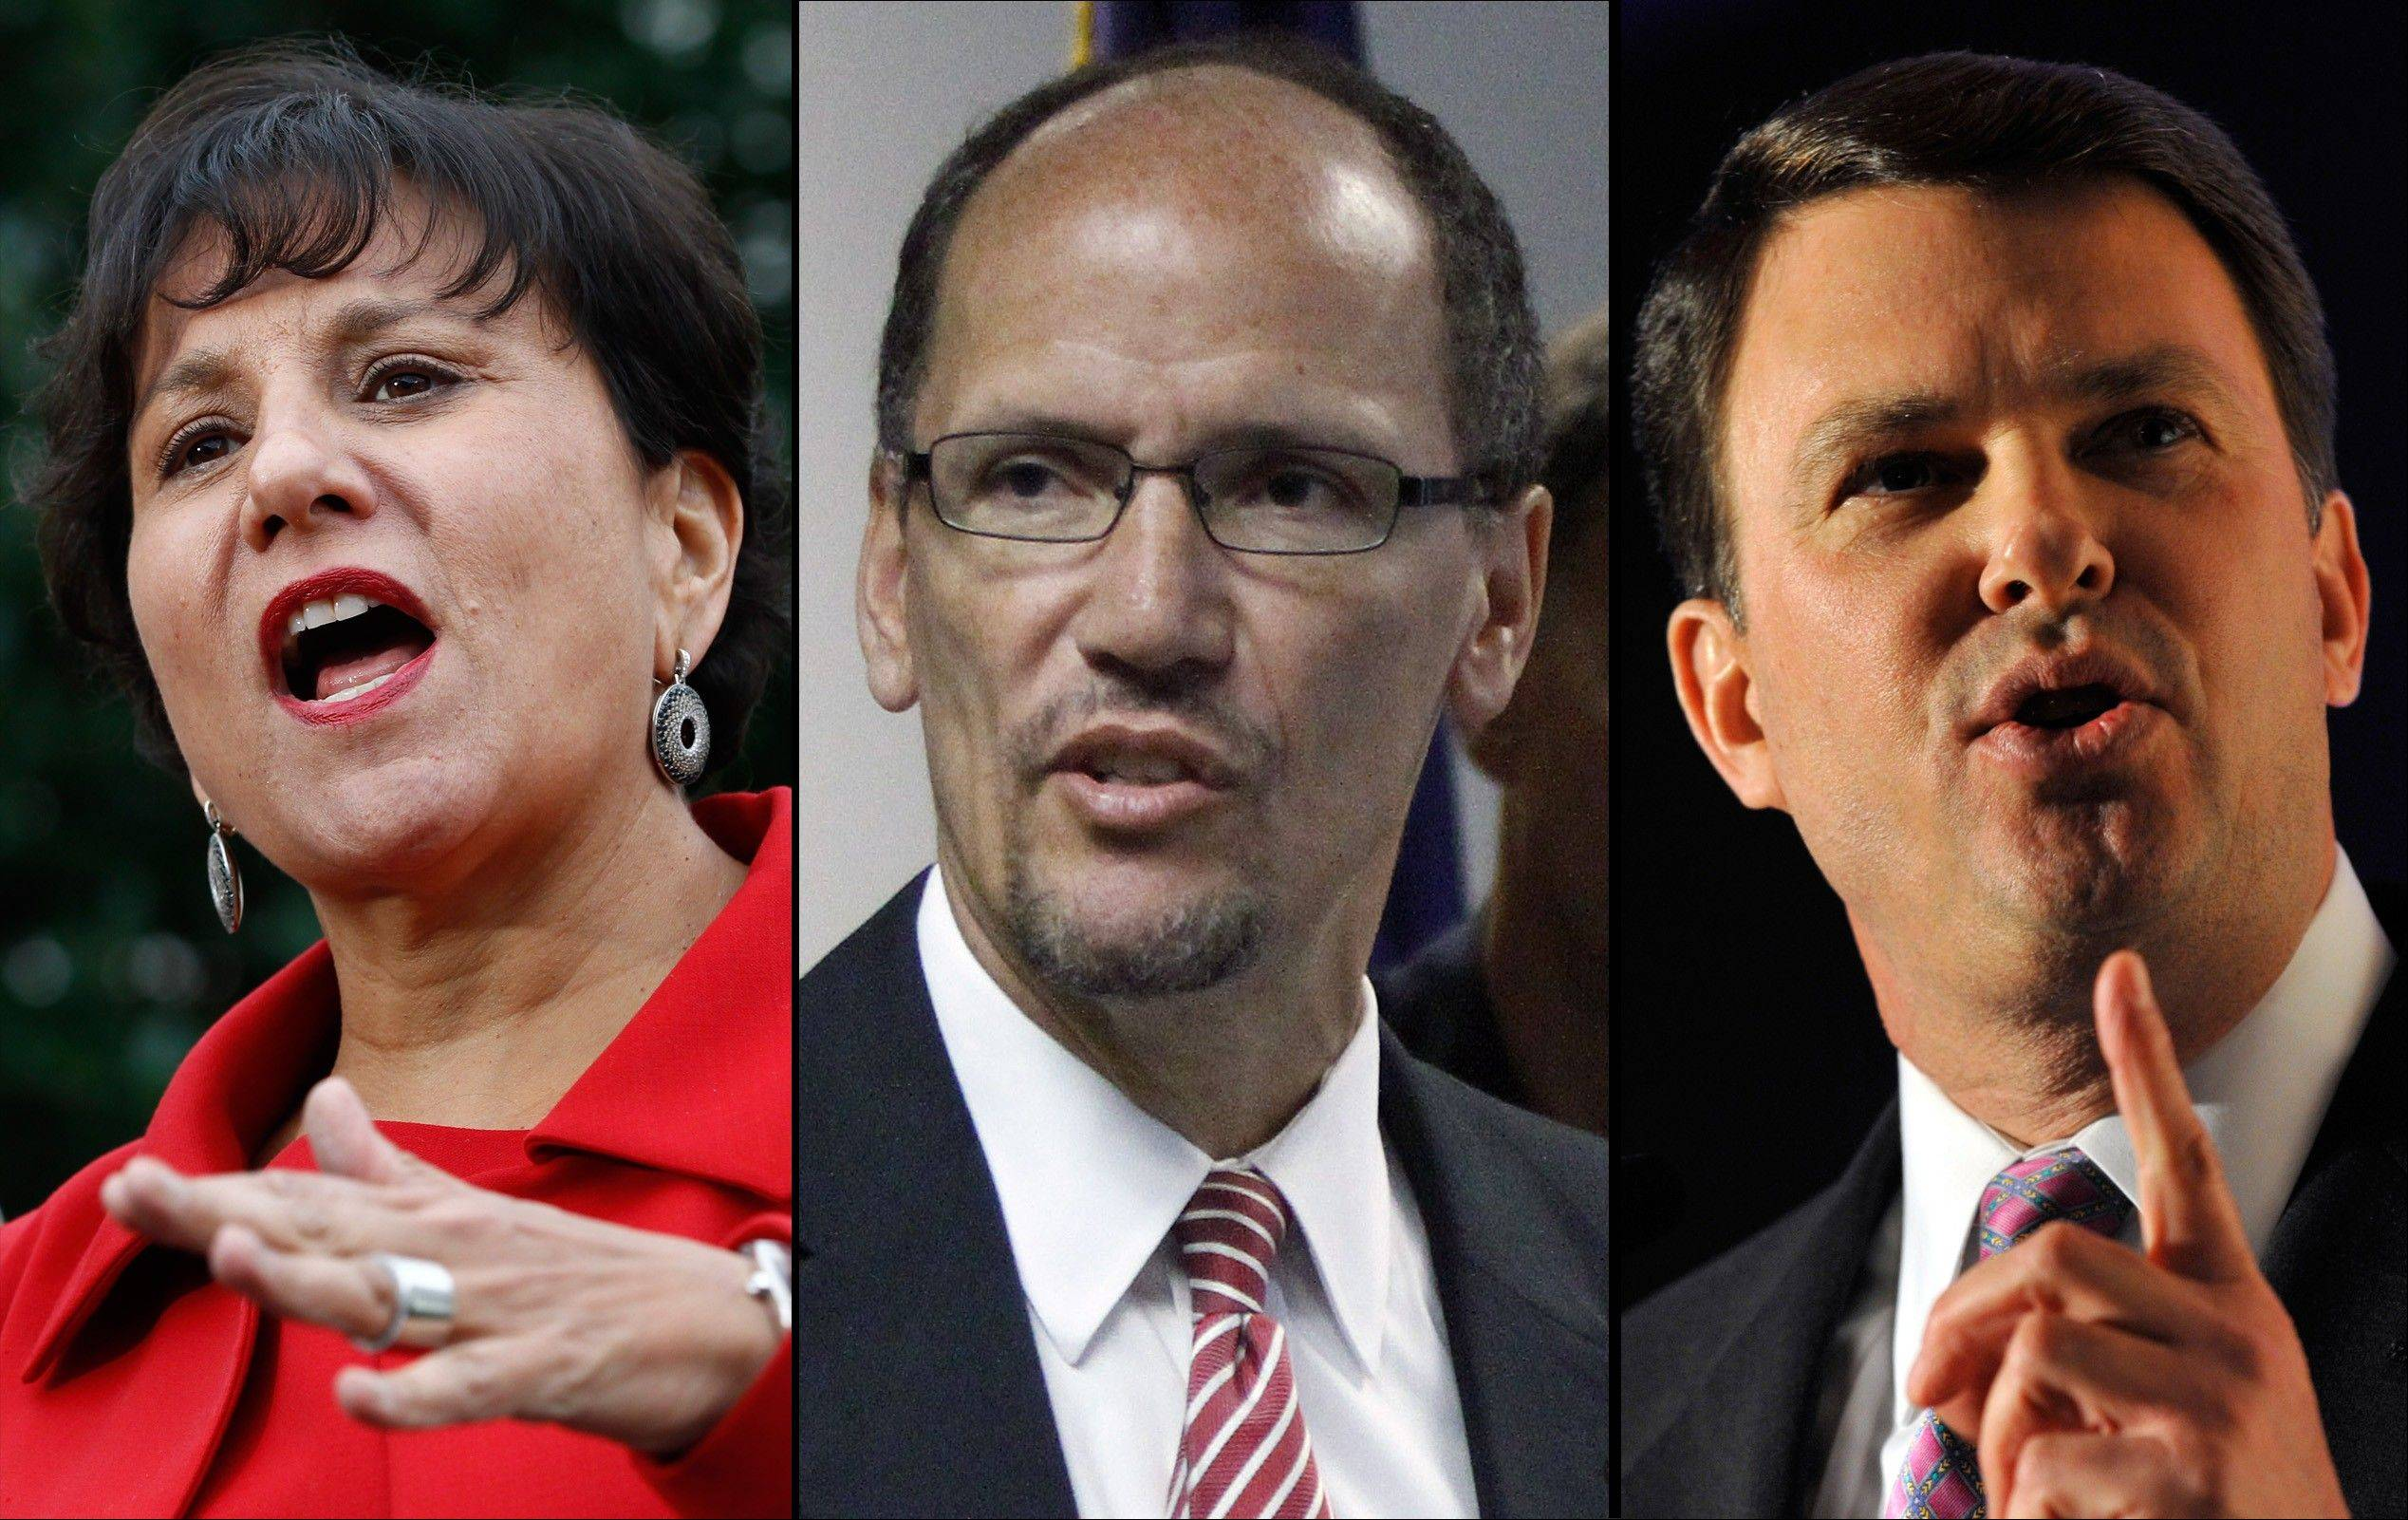 This combination of file photos shows from left: Penny Pritzker, a long-time Obama ally and big-money fundraiser from Chicago; Tom Perez, the assistant U.S. attorney general for civil rights and former secretary of Maryland's Department of Labor, Licensing and Regulation; and John Berry, the current director of the U.S. Office of Personnel Management and a former senior official at the Interior Department. He is the highest ranking openly gay official in the government. The three have been speculated as potential replacements for cabinet positions in the Obama administration. Obama is said to be looking at women, Latinos and openly gay candidates for top slots at the departments of Commerce, Labor and Interior, and for his own White House budget office.